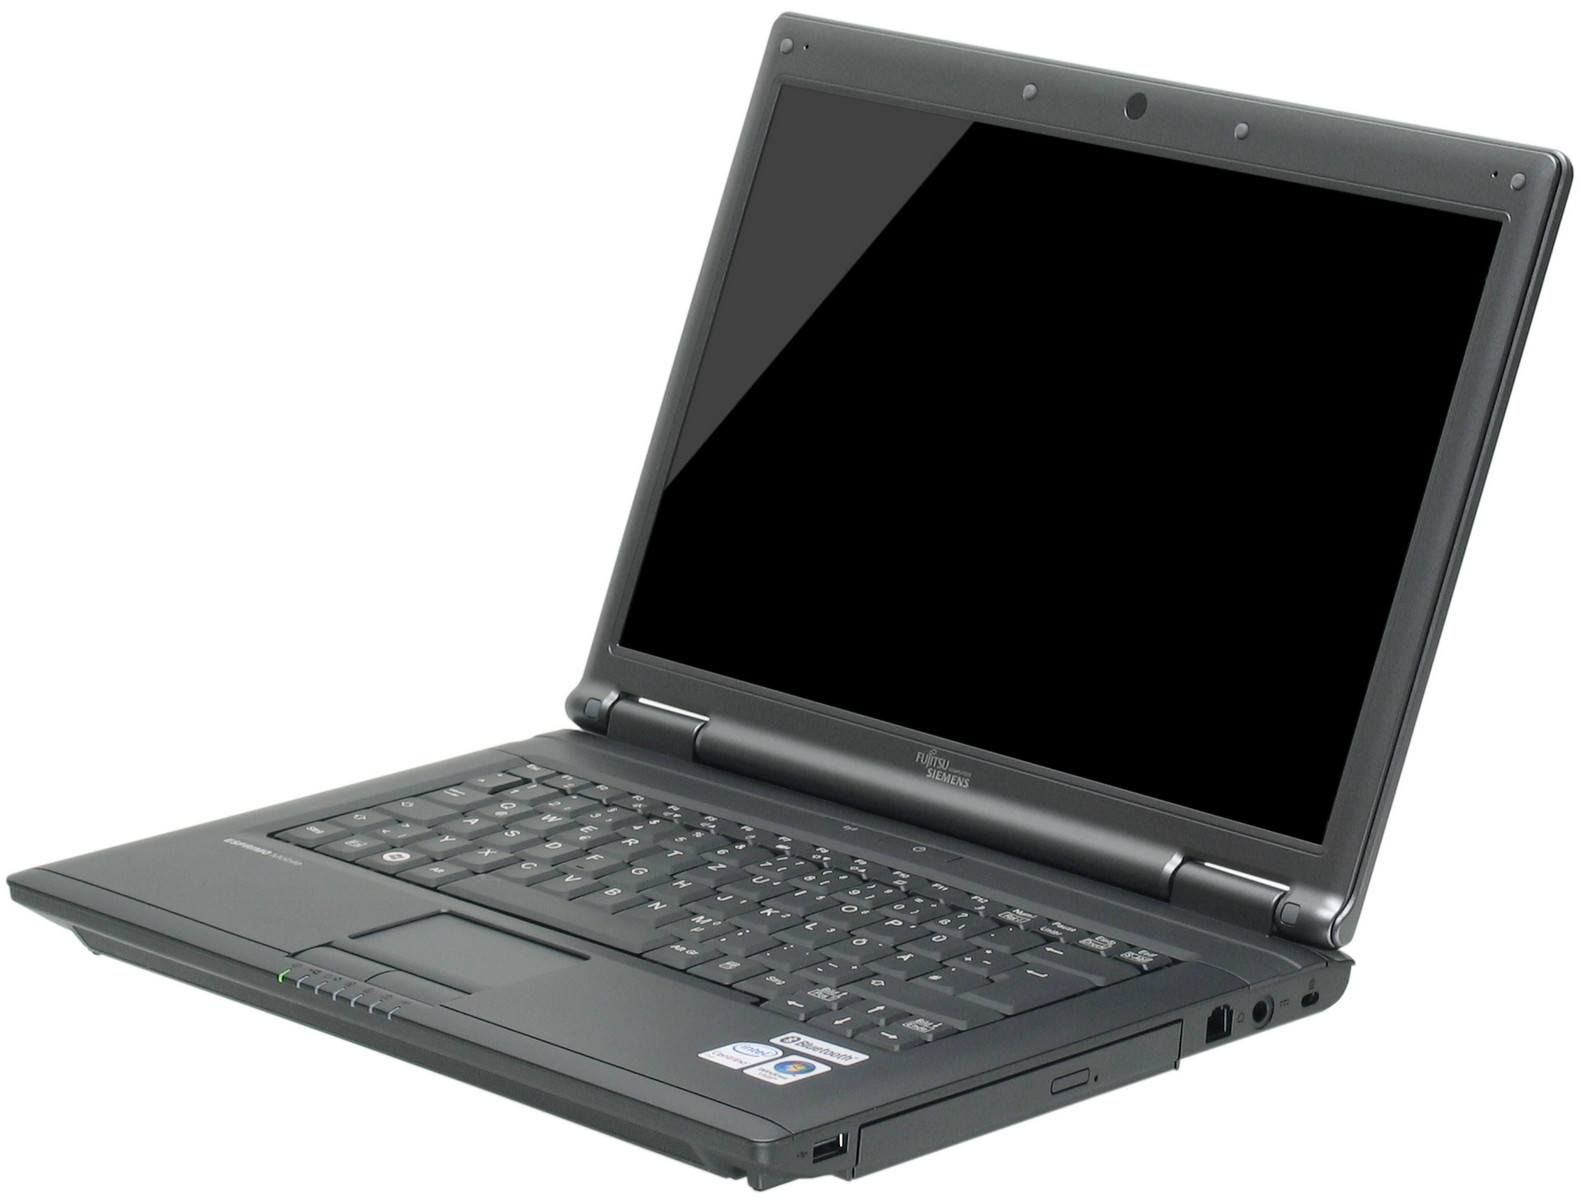 ESPRIMO MOBILE M9400 WINDOWS 8 DRIVER DOWNLOAD